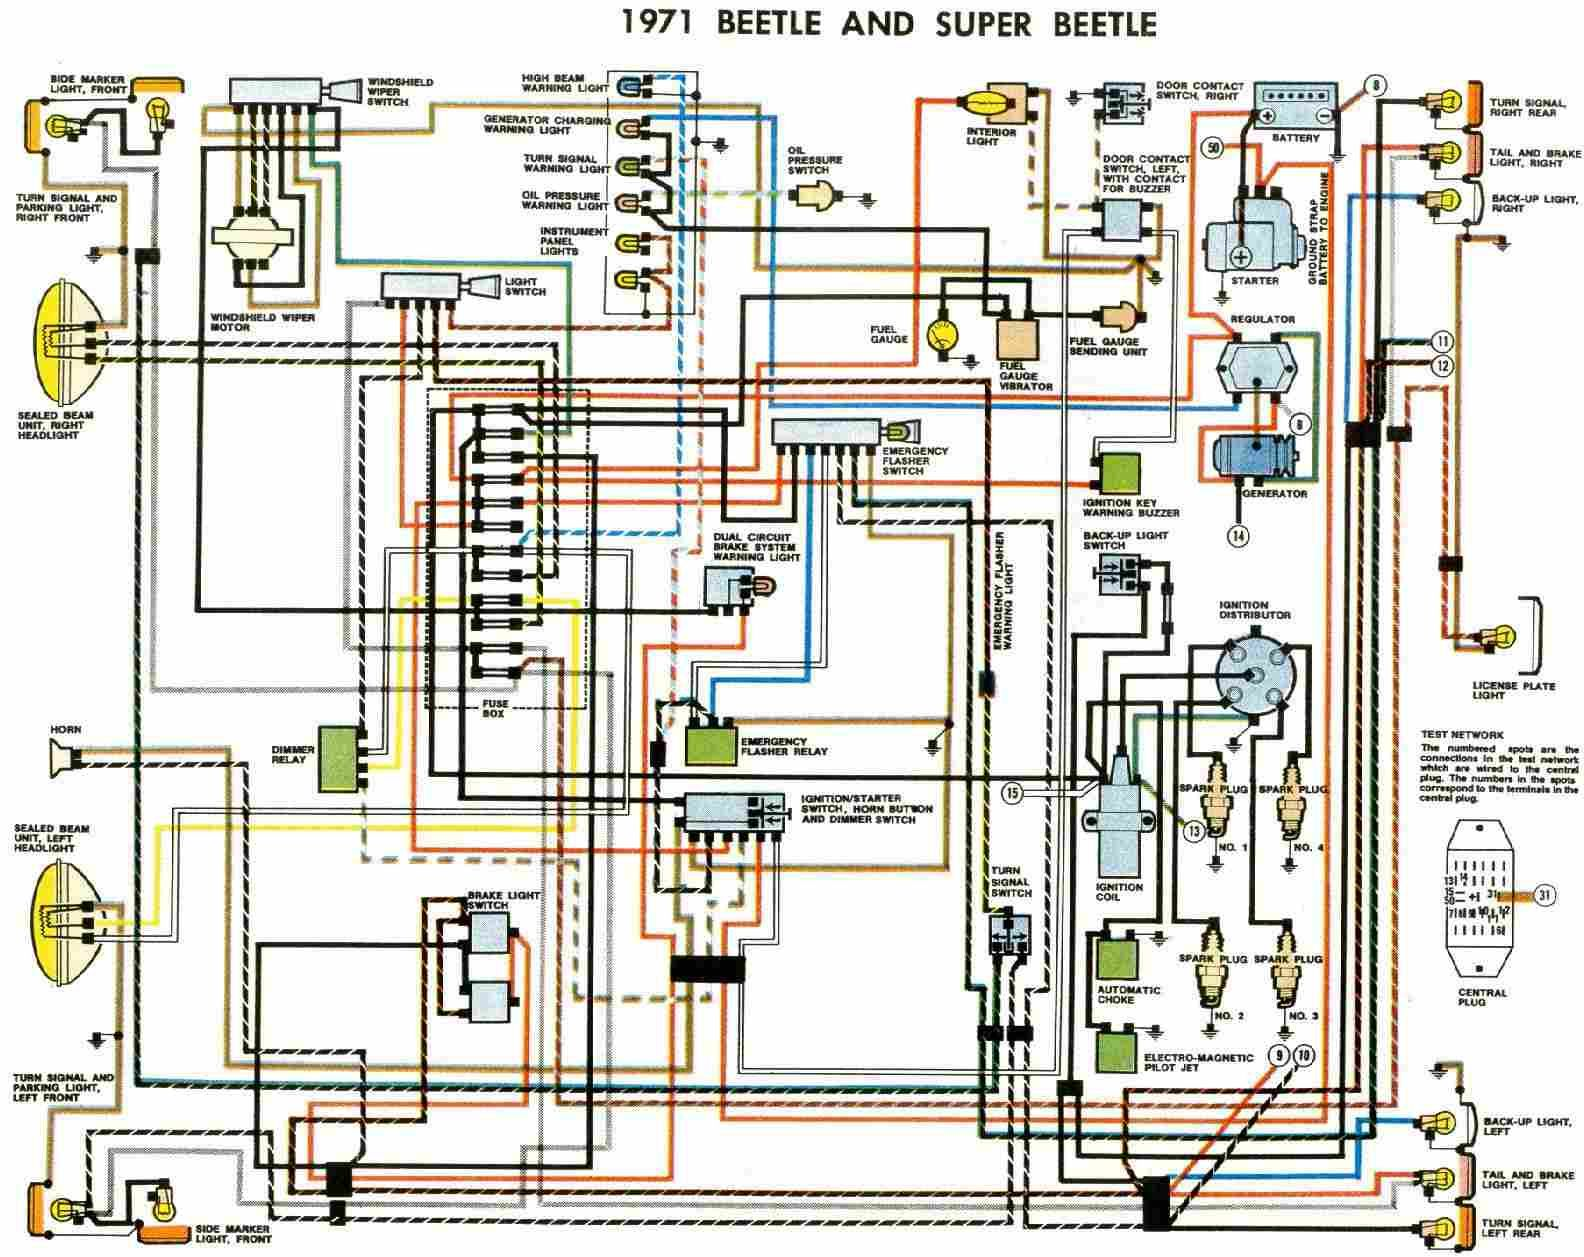 6379f2a777a0eb1b27fdba46670ceb6a how to read vw wiring diagrams basic motorcycle wiring diagram how to read automotive wiring diagrams pdf at gsmx.co